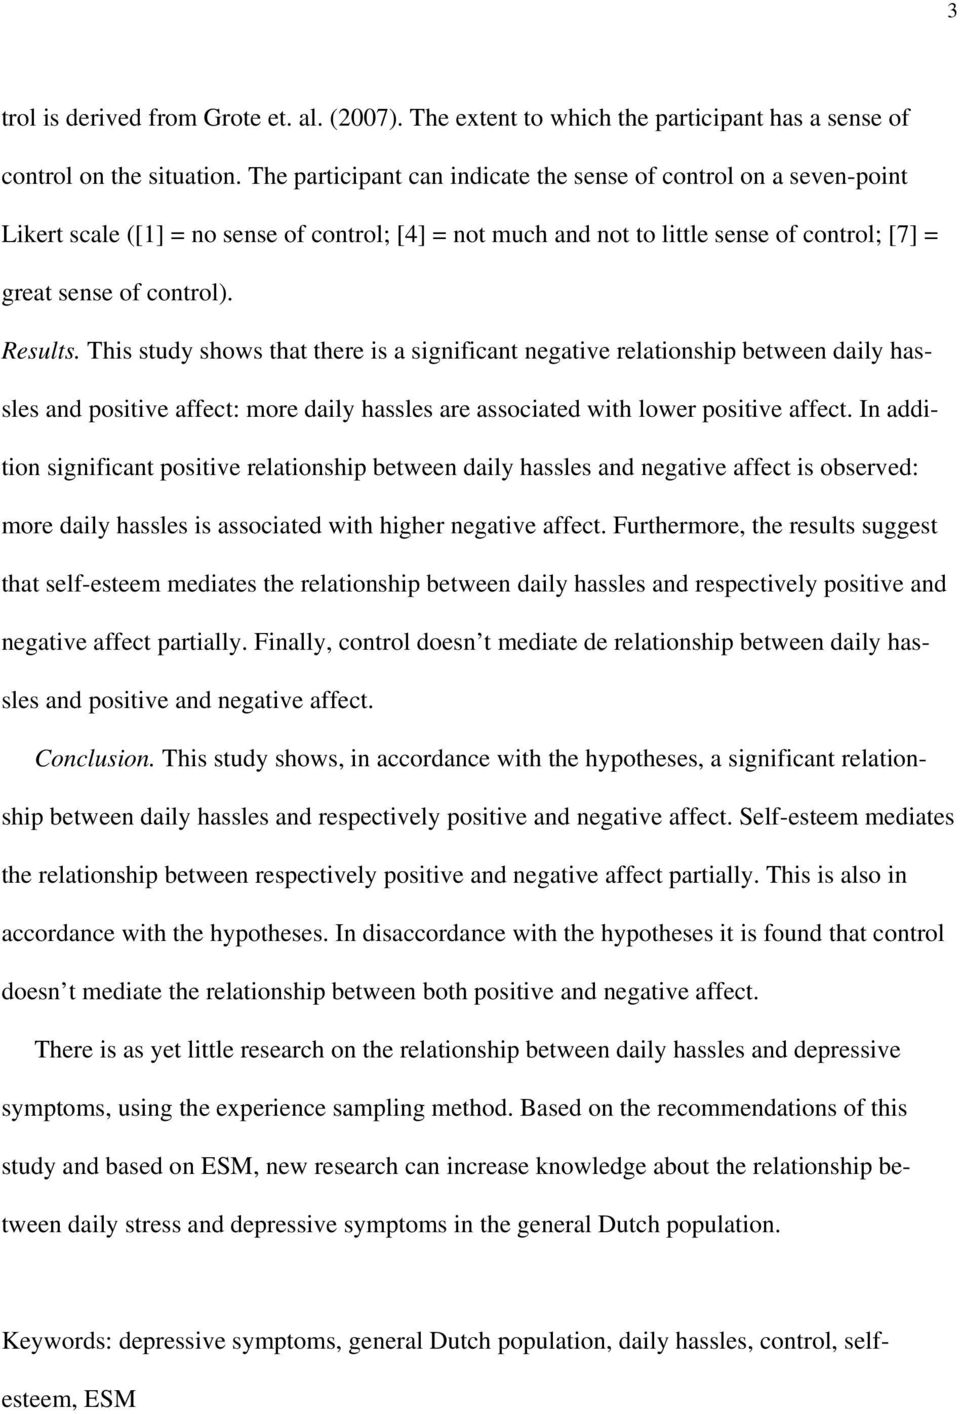 This study shows that there is a significant negative relationship between daily hassles and positive affect: more daily hassles are associated with lower positive affect.